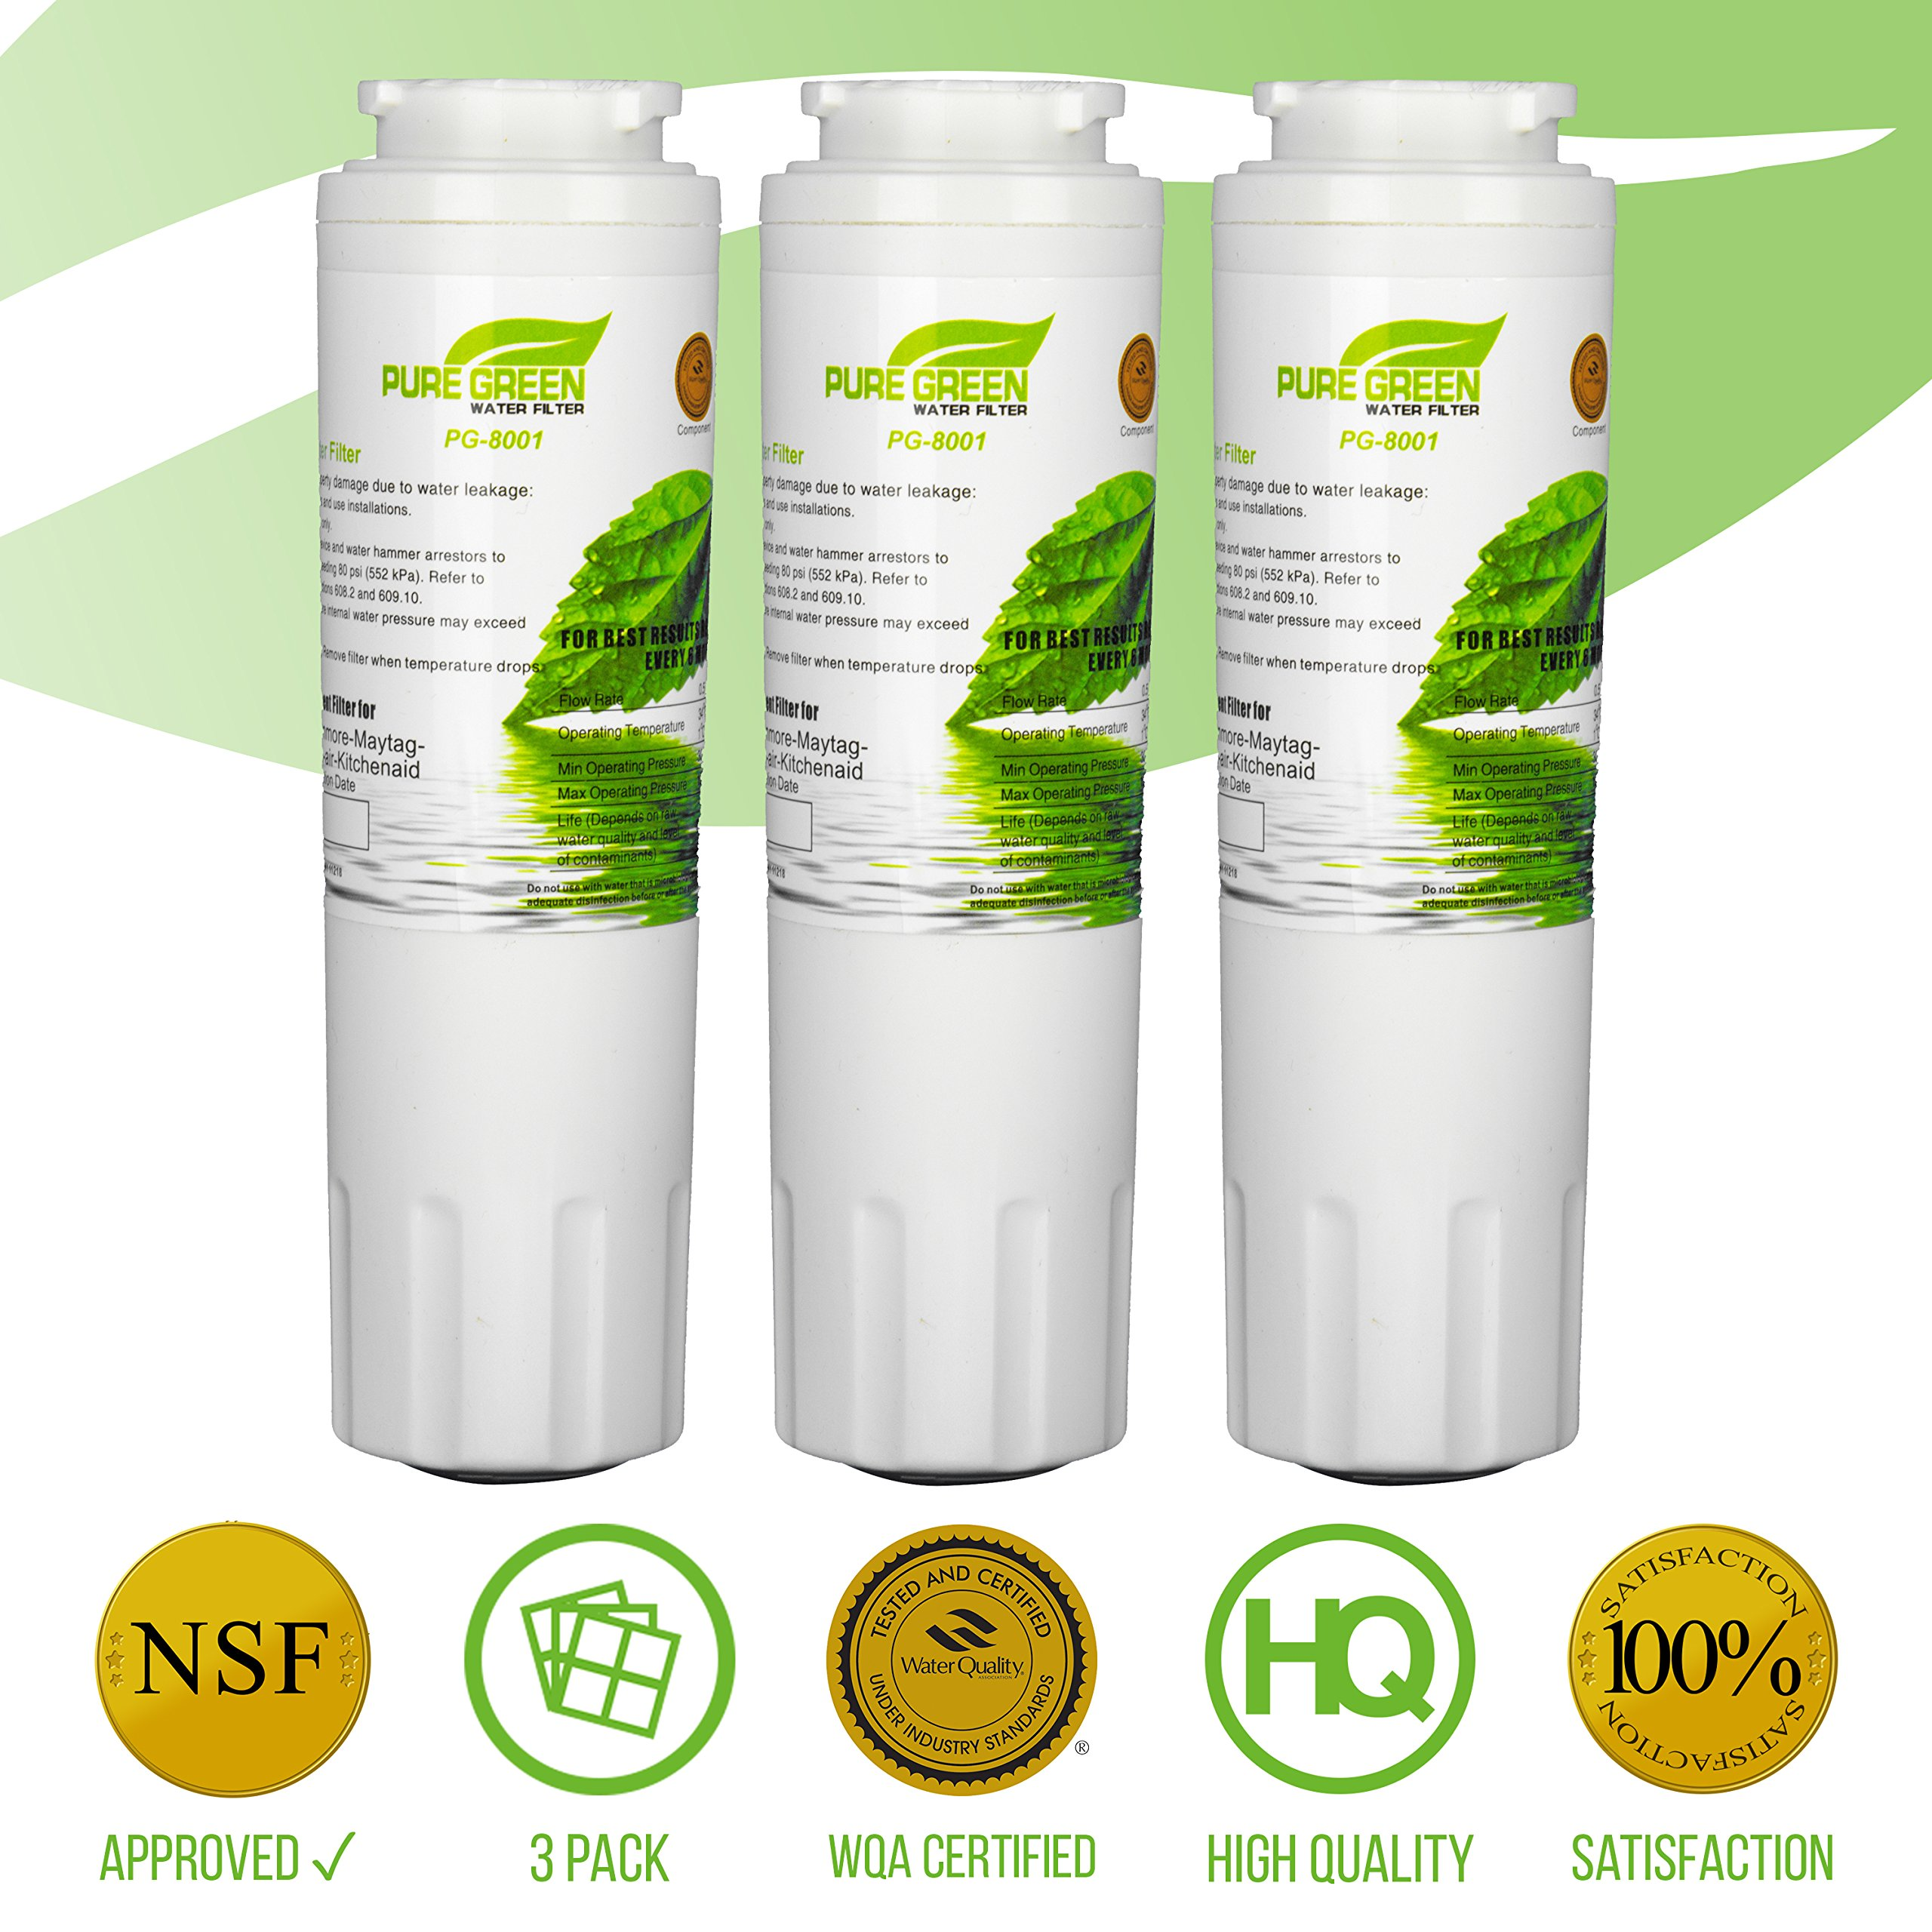 Pure Green Water Filter PG-8001 Maytag UKF8001 Refrigerator Water Filters | Nsf Certified |, Lead Free | 3 Pack, 3 Count